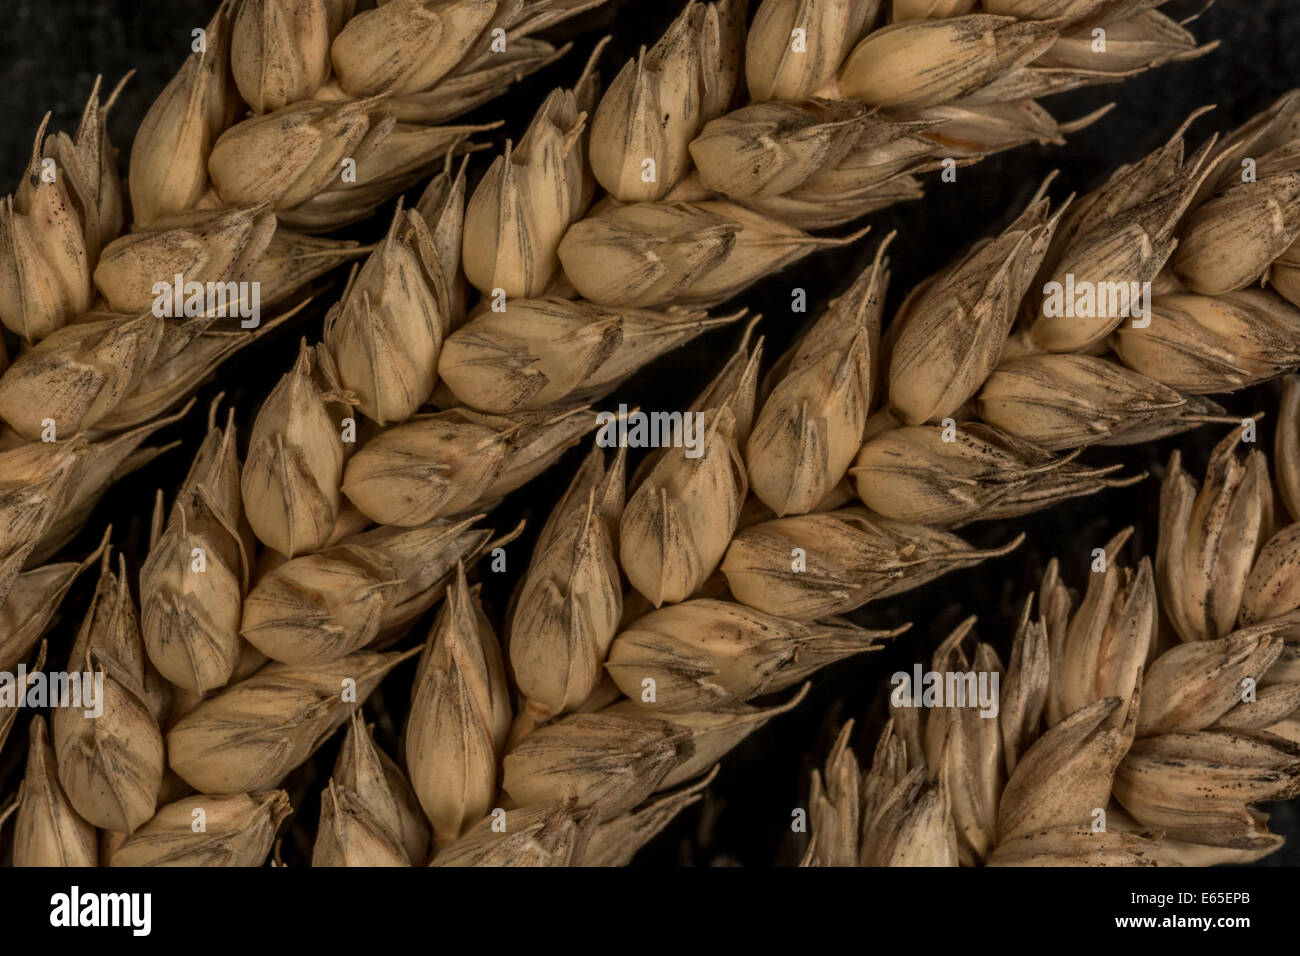 Close-up of wheat (Triticum sp.) ears. Visual metaphor for concept of famine. Metaphor for food security / growing - Stock Image